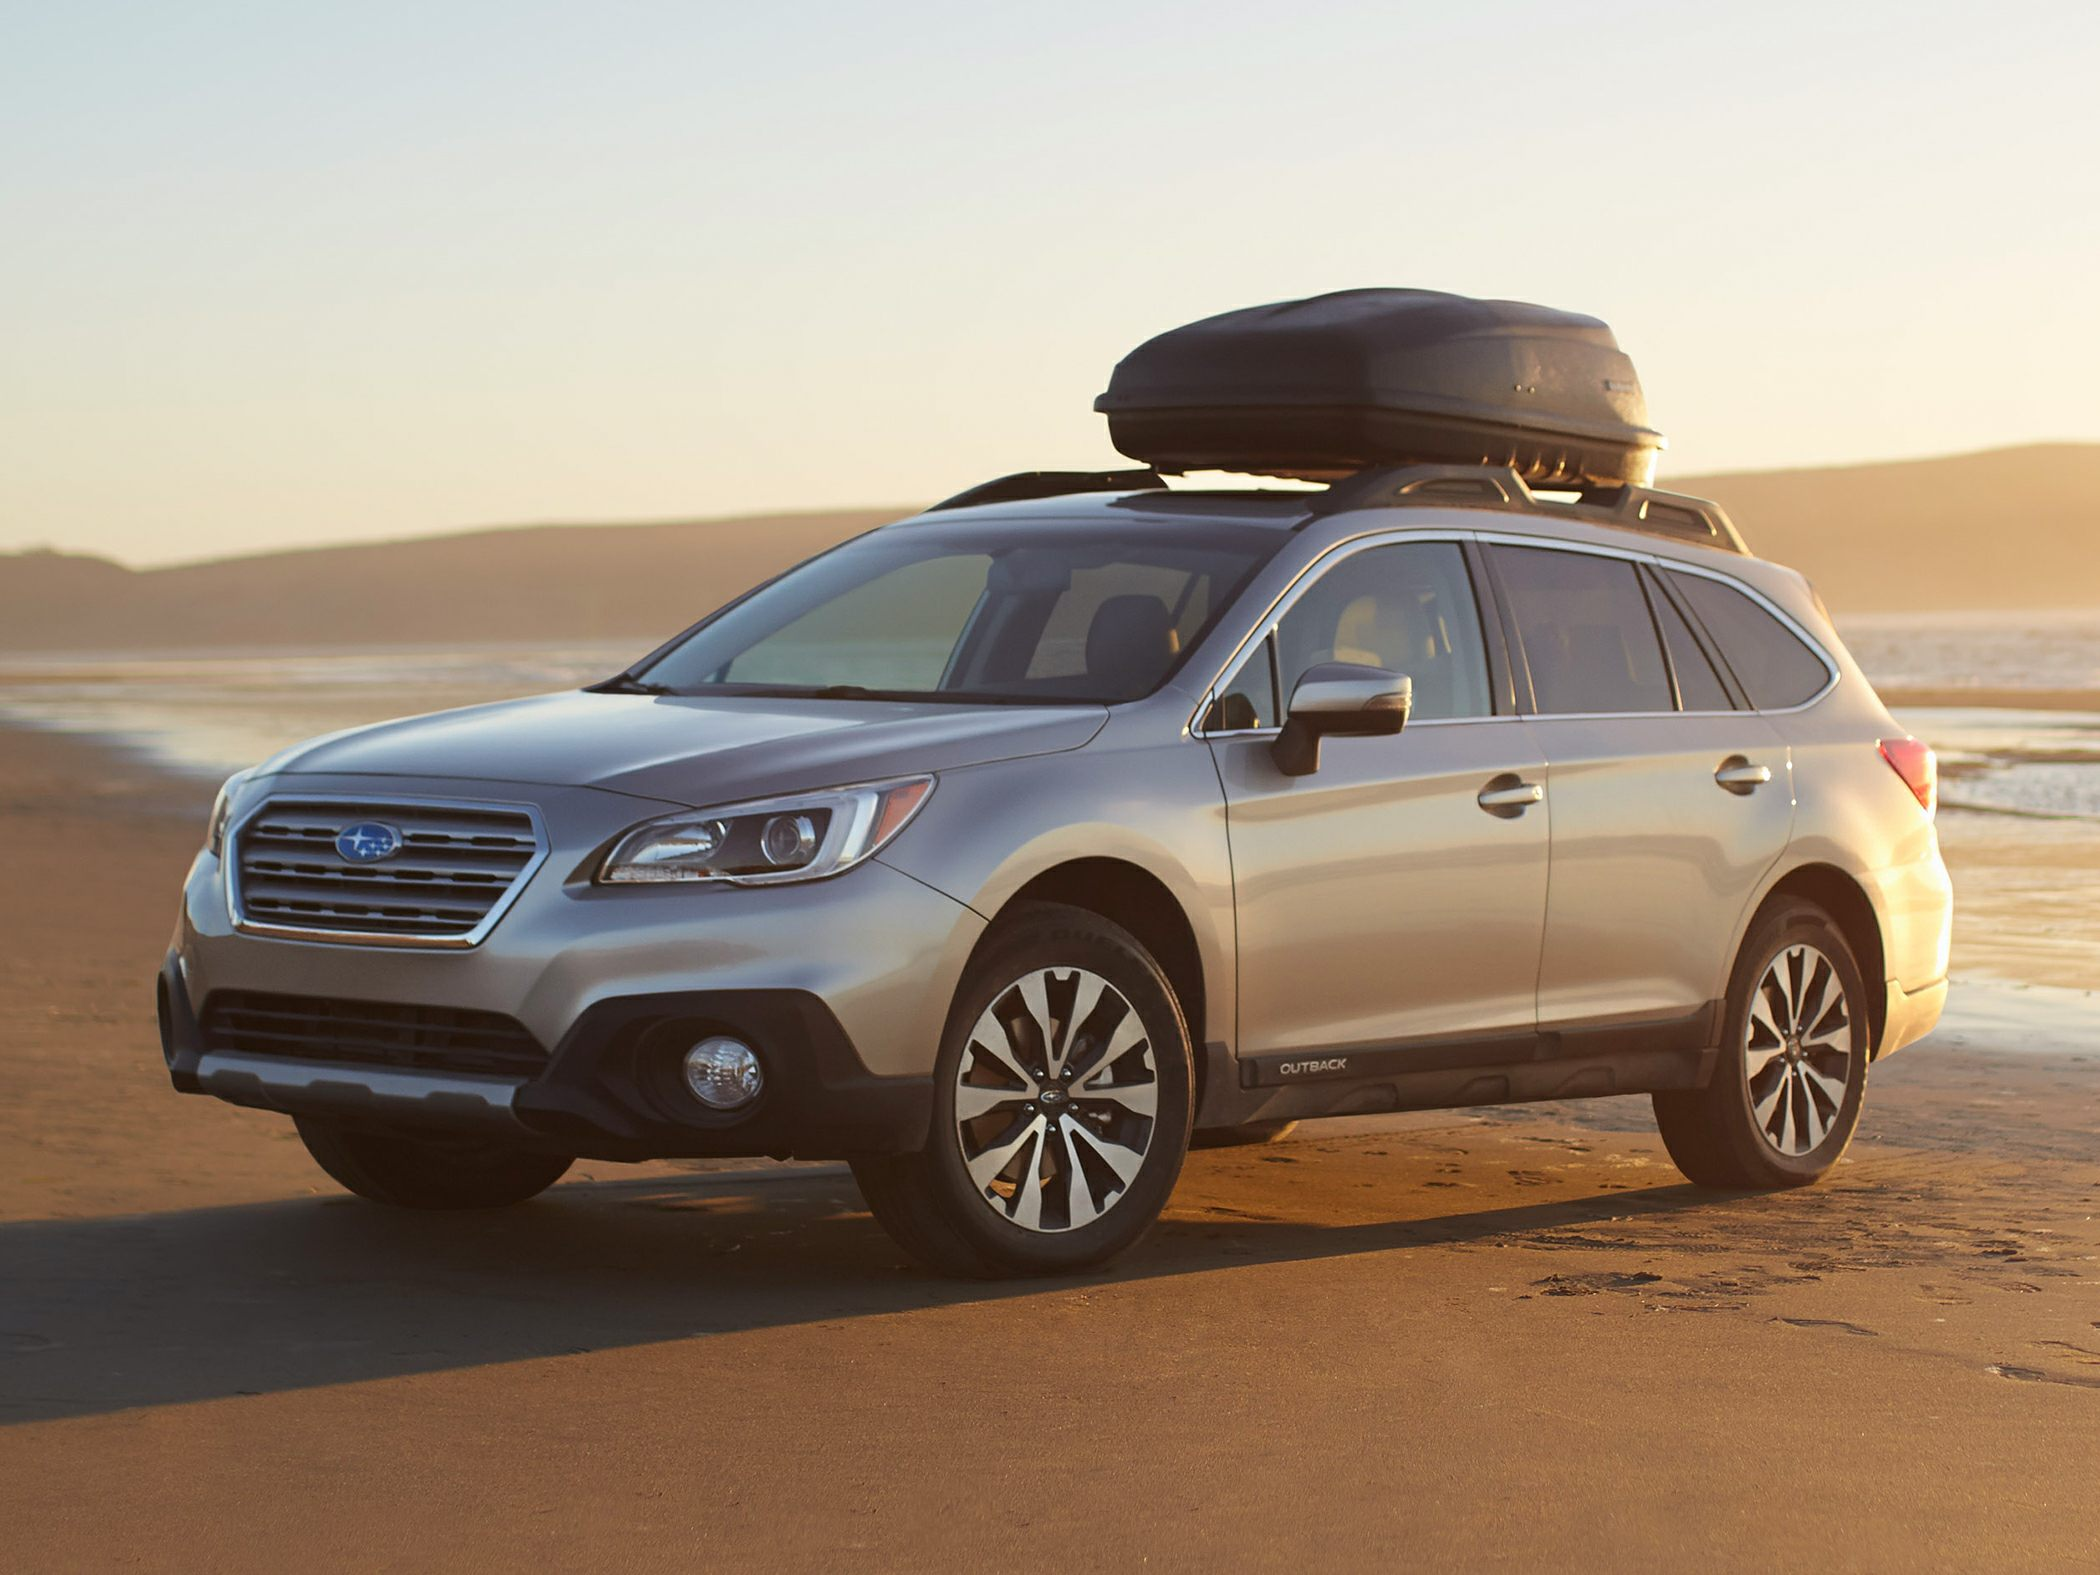 Subaru Outback News, Photos and Buying Information - Autoblog